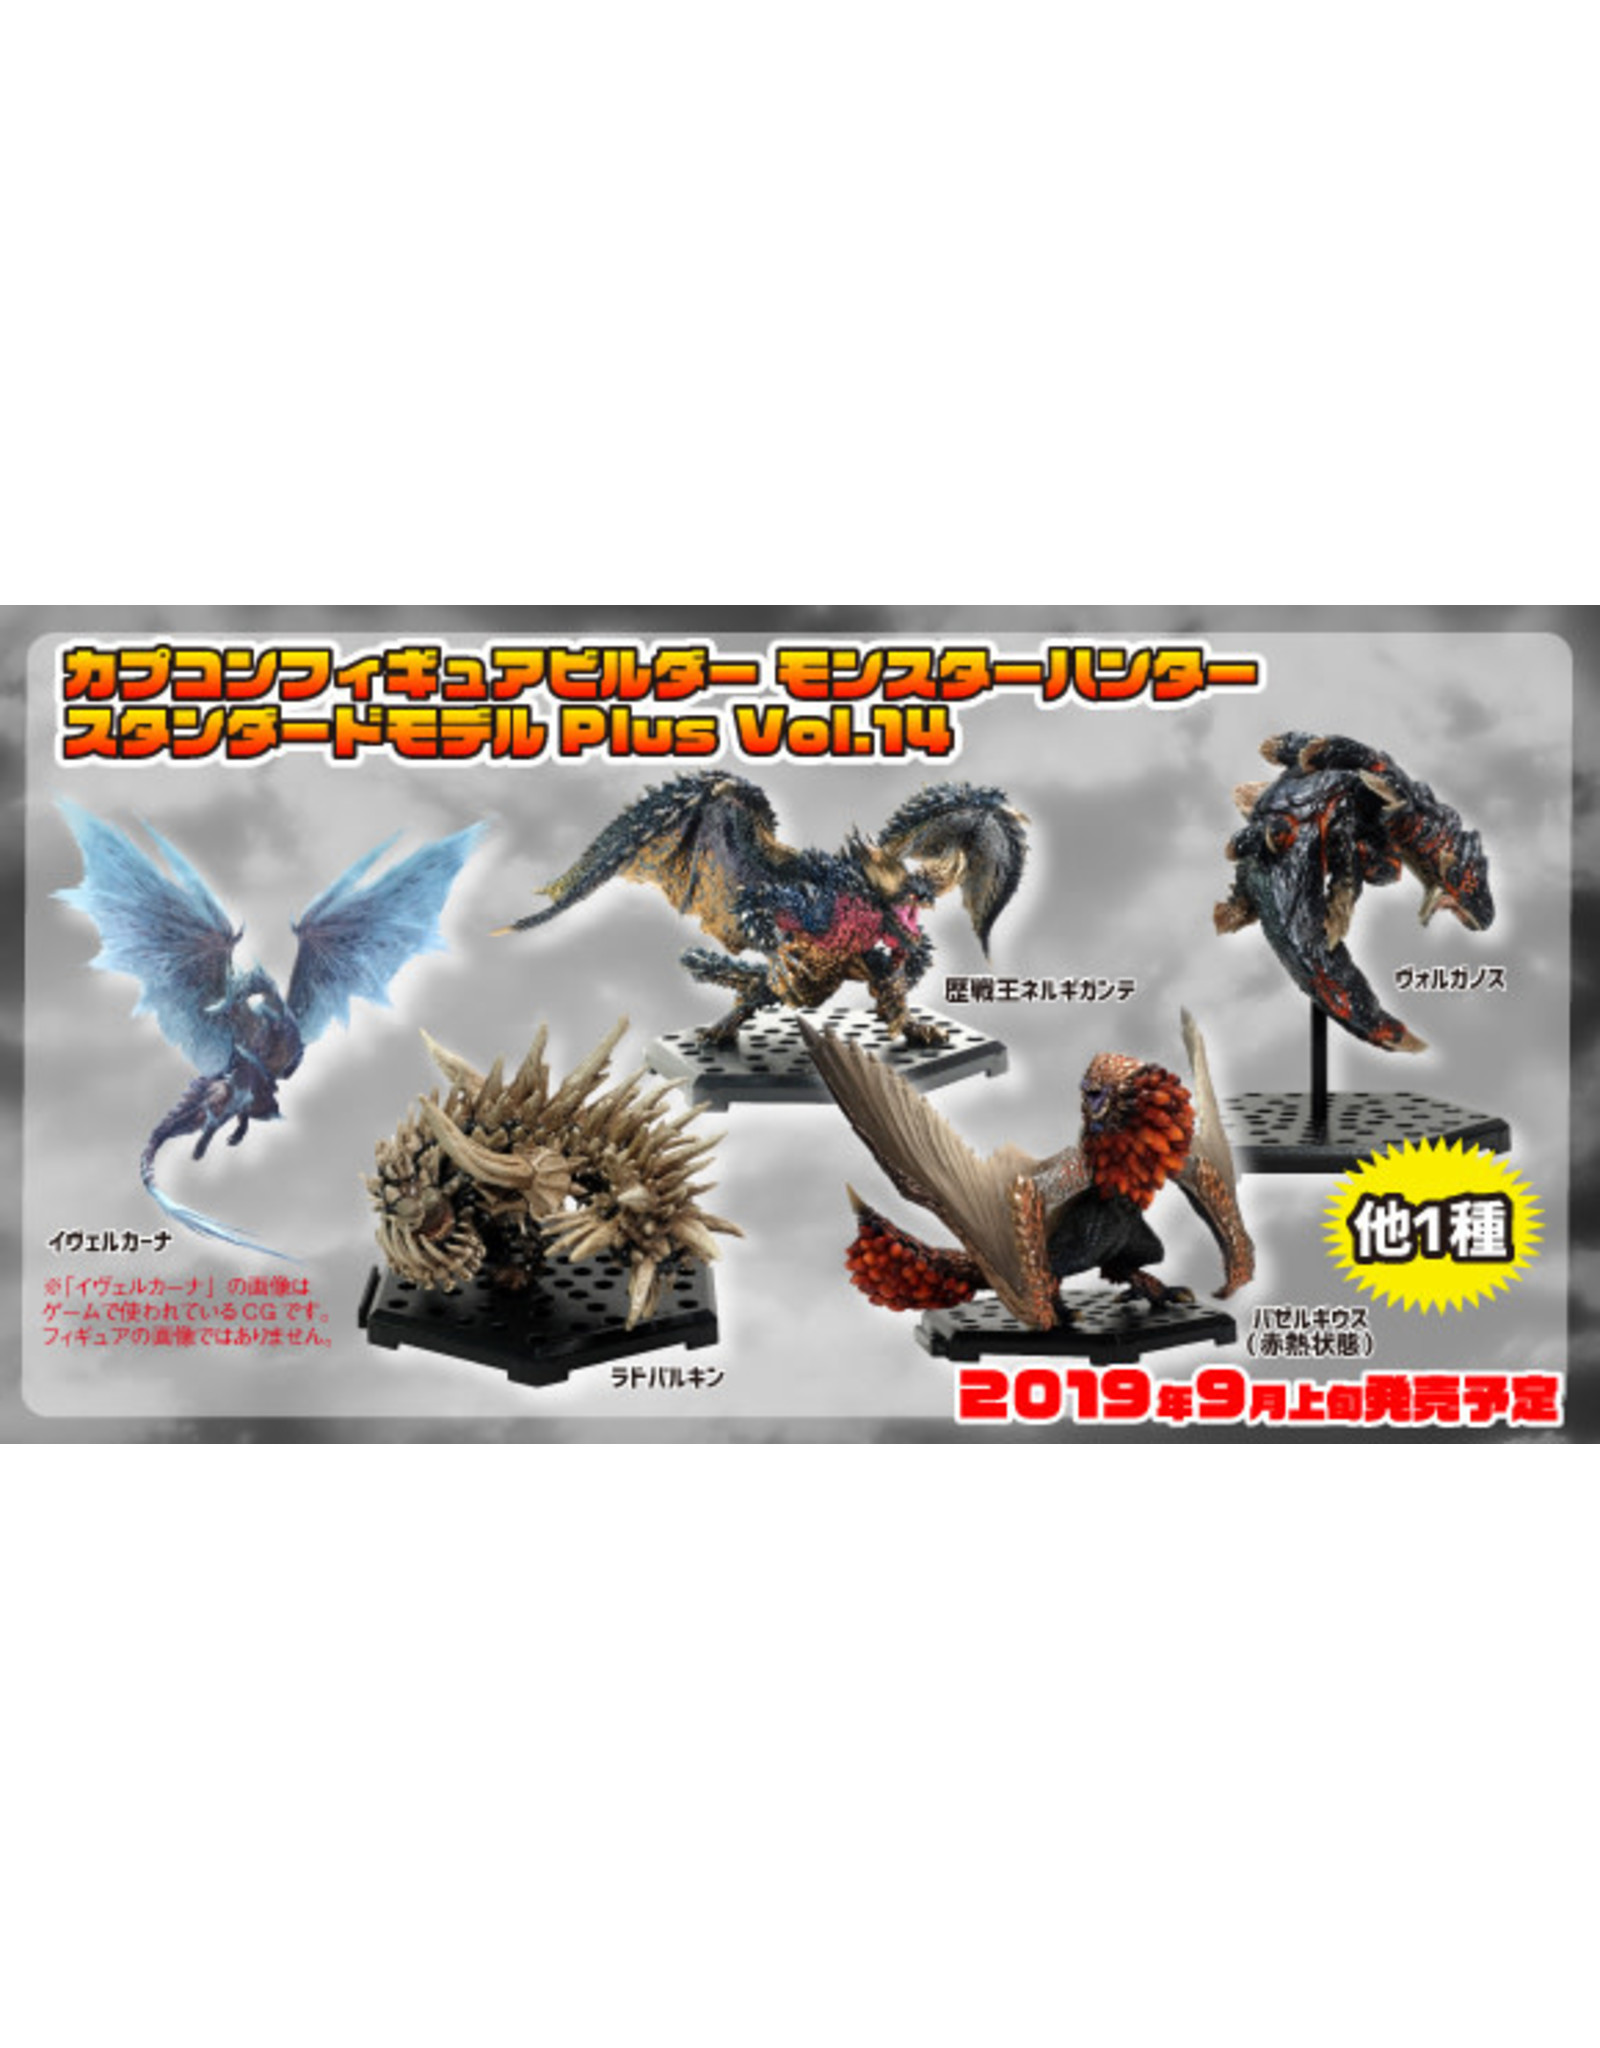 Monster Hunter Plus Vol. 14 Blind Box